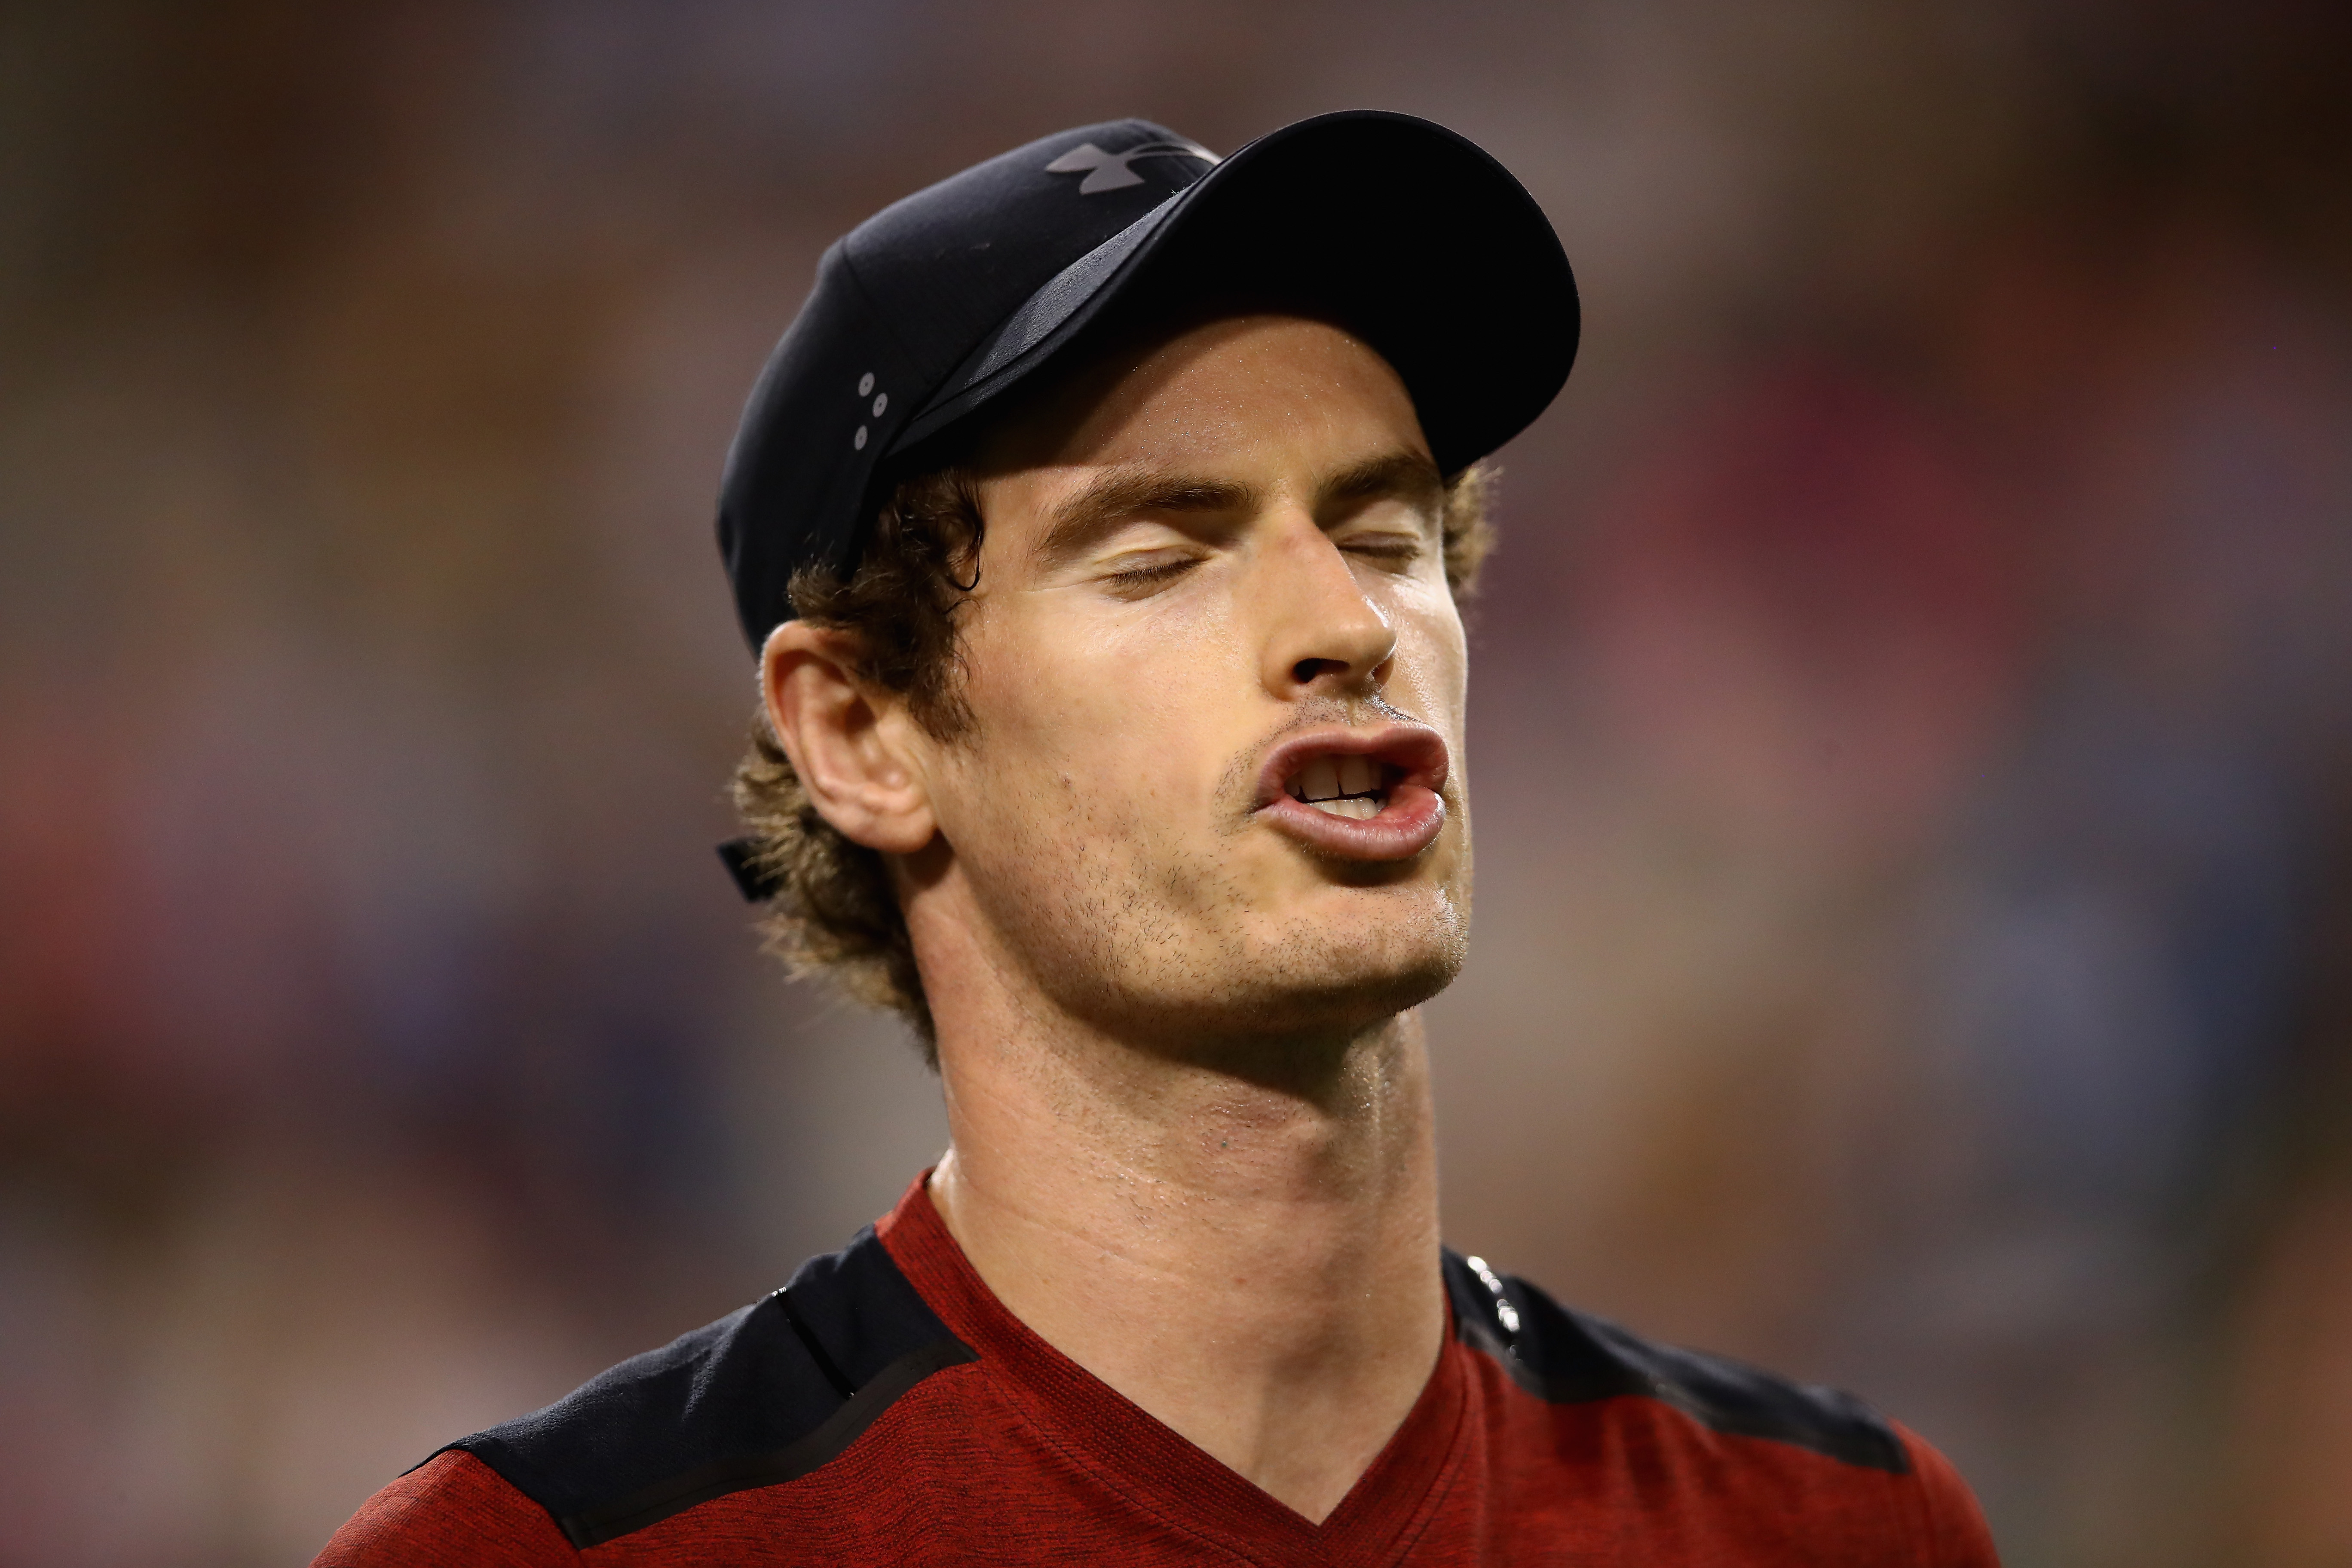 Sir Andy Murray likely to miss Davis Cup tie v France after elbow 'tear', brother Jamie confirms